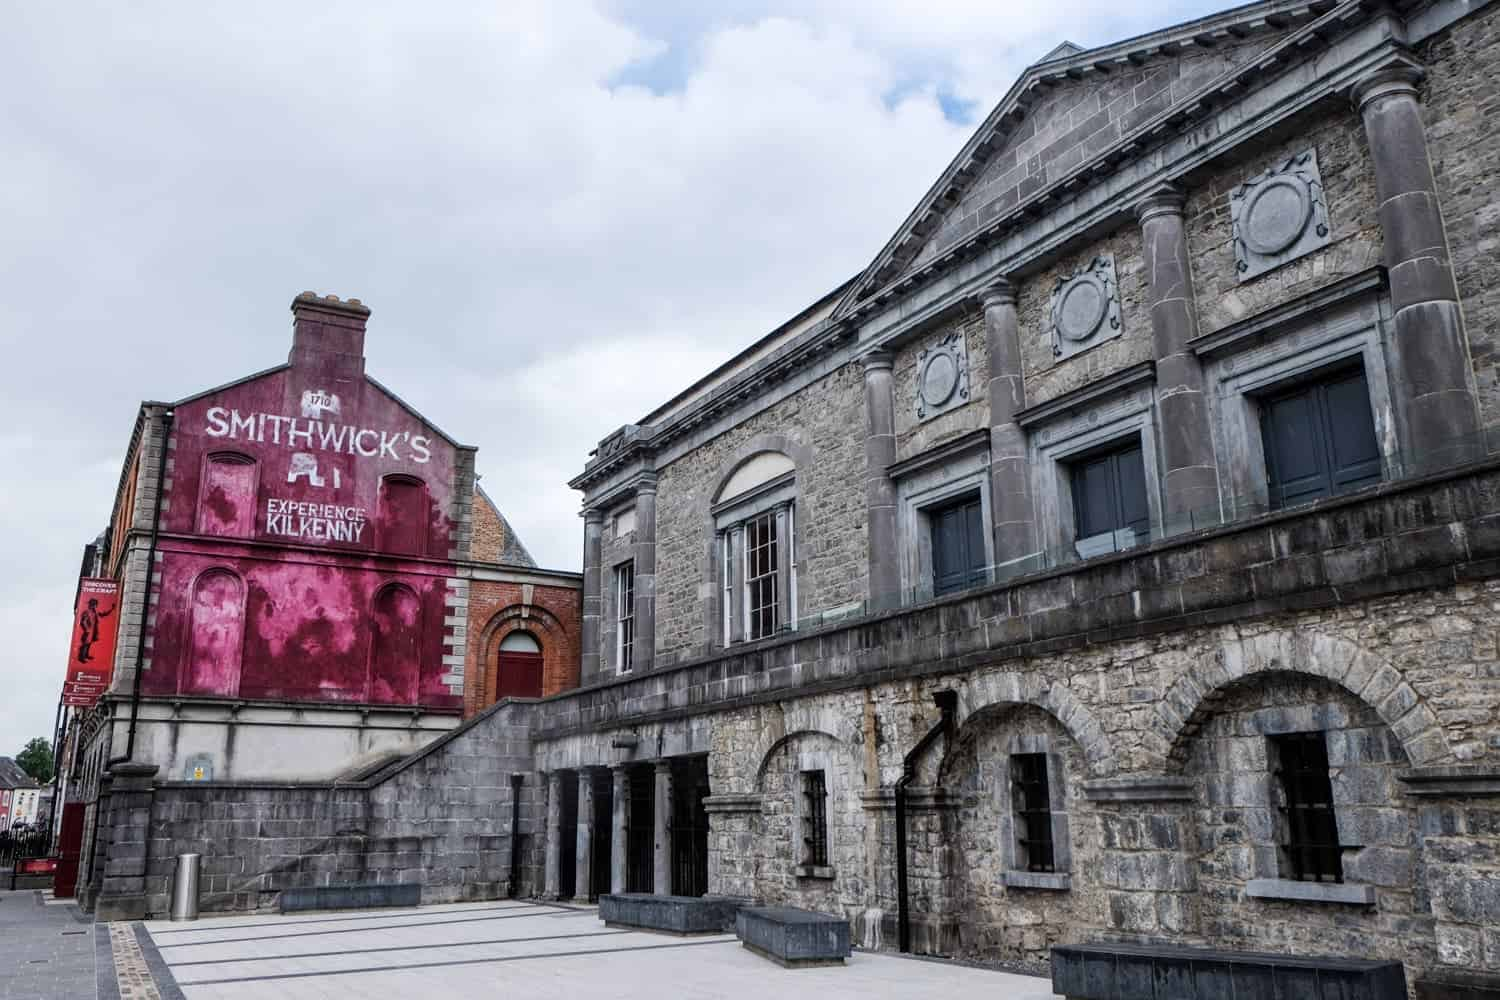 Smithwicks Beer, Kilkenny, Ireland's Ancient East, Medieval Mile